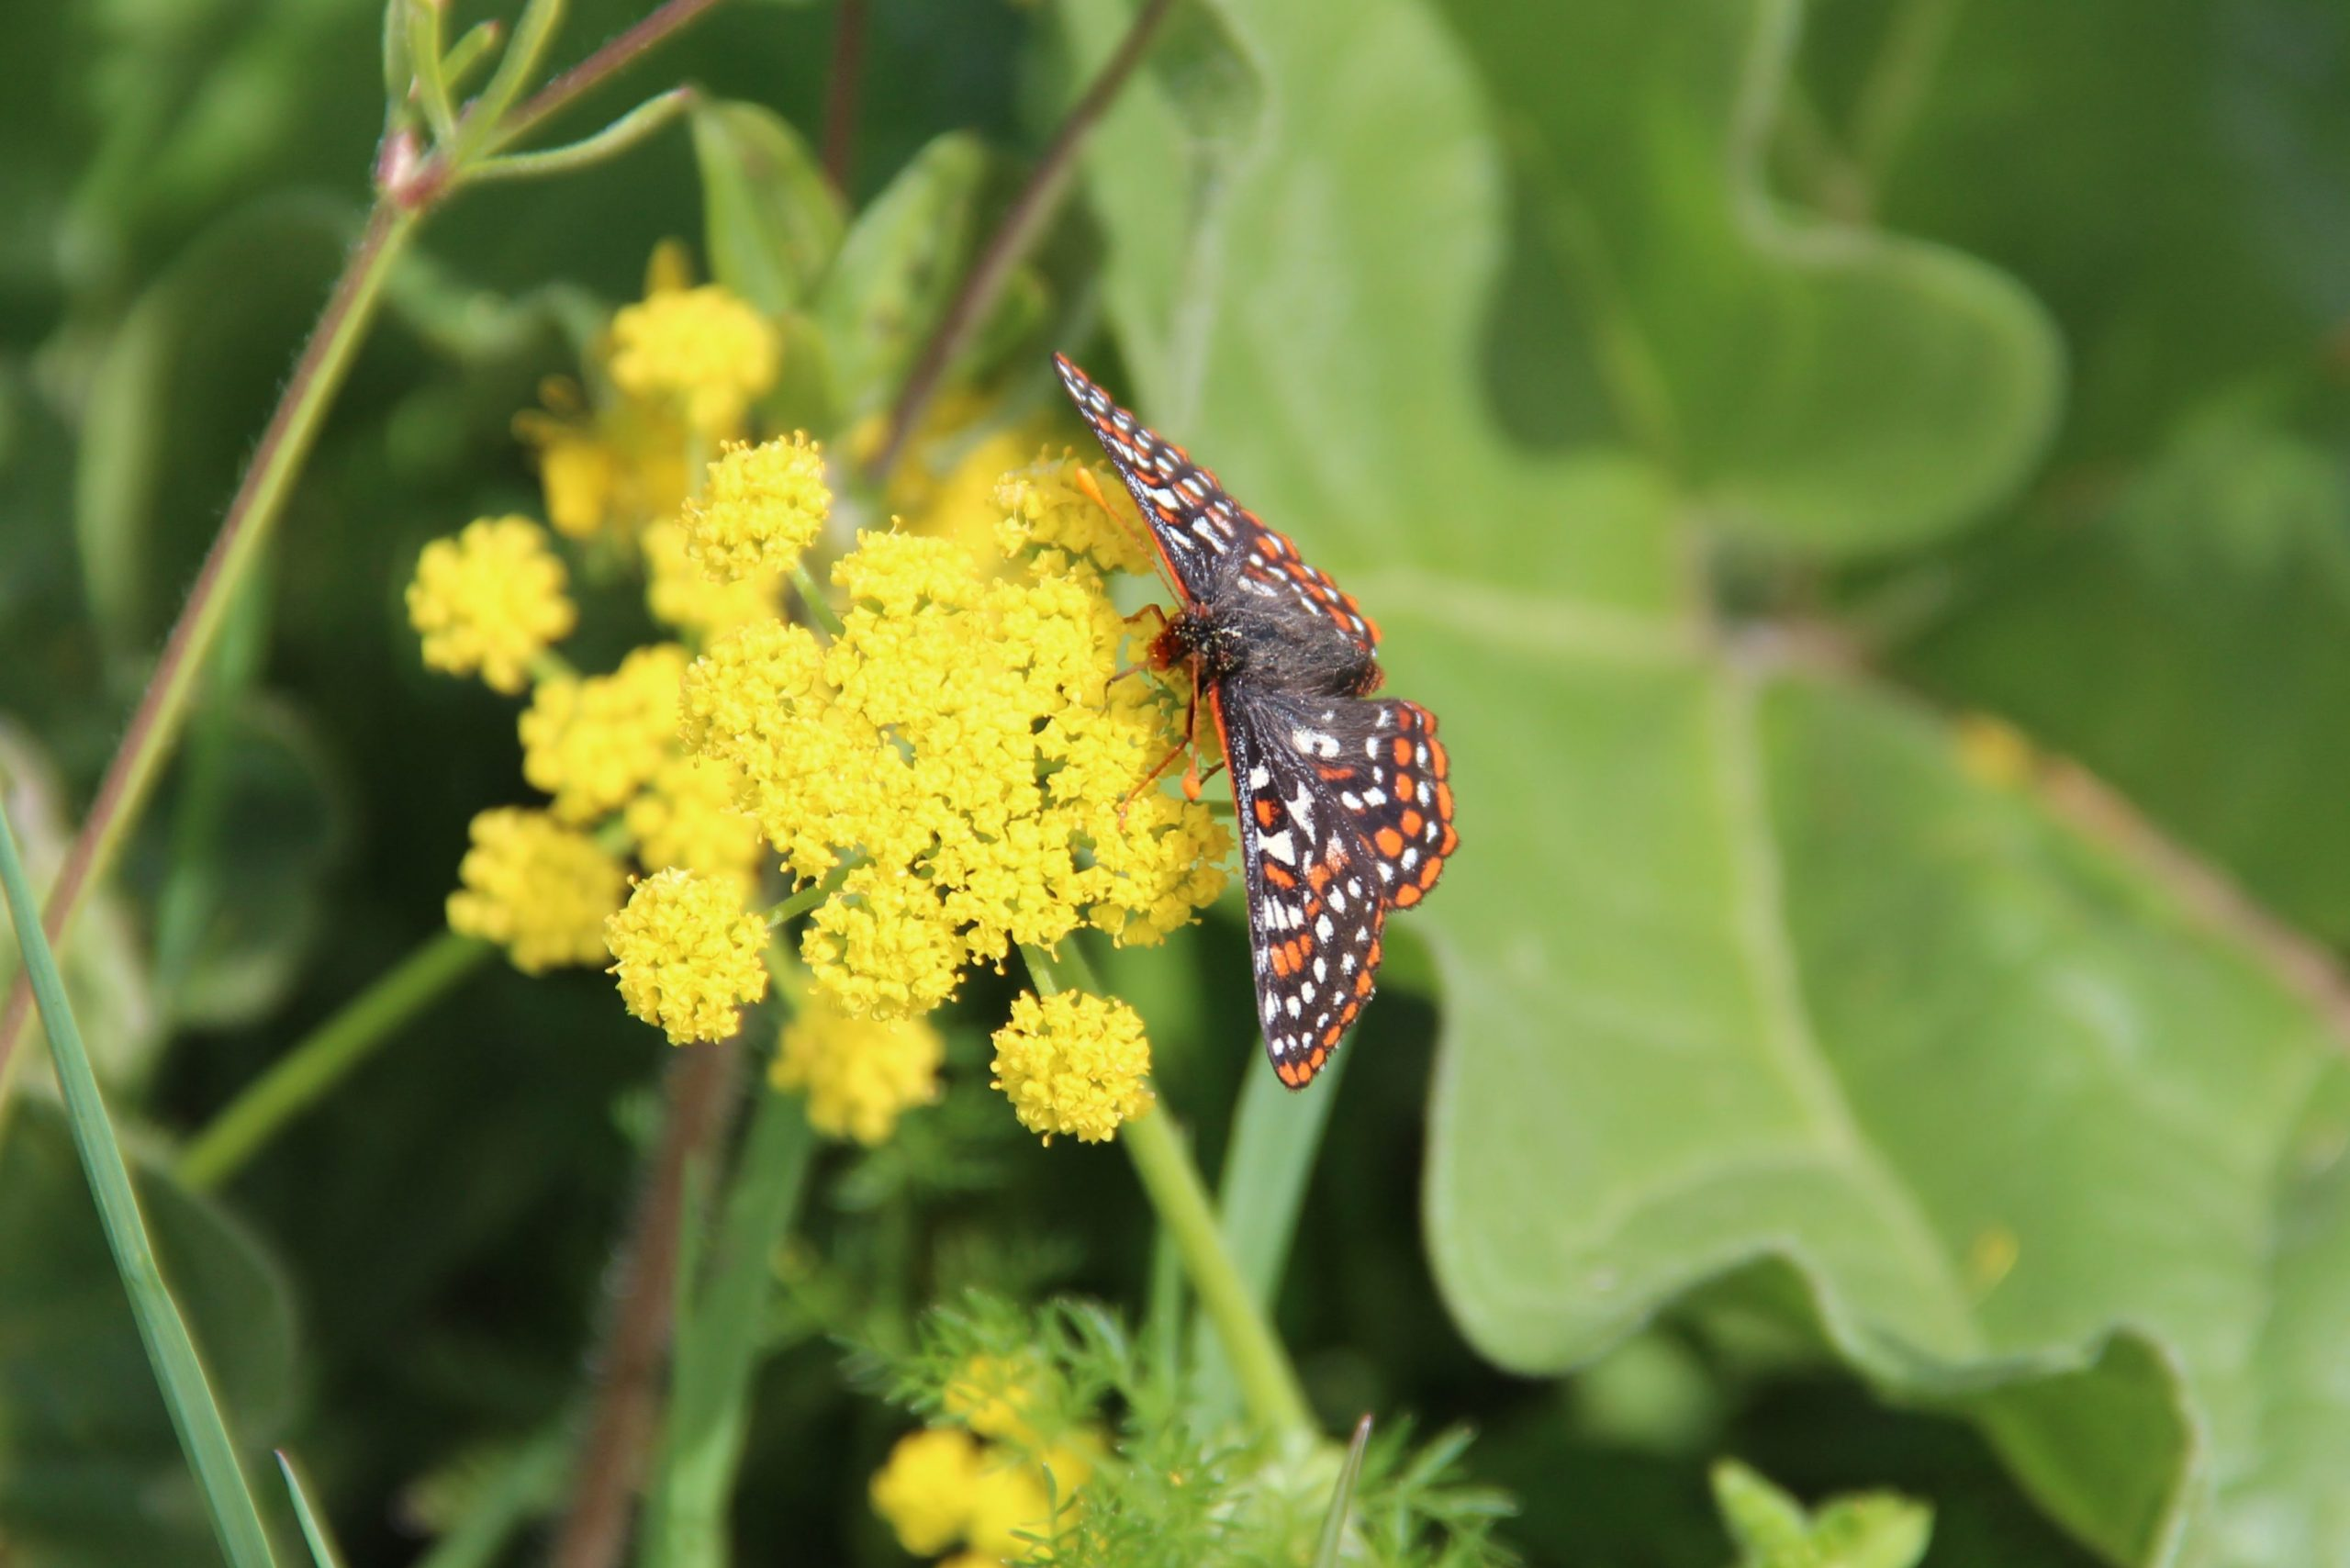 Taylor's checkerspot butterfly on lomatium.